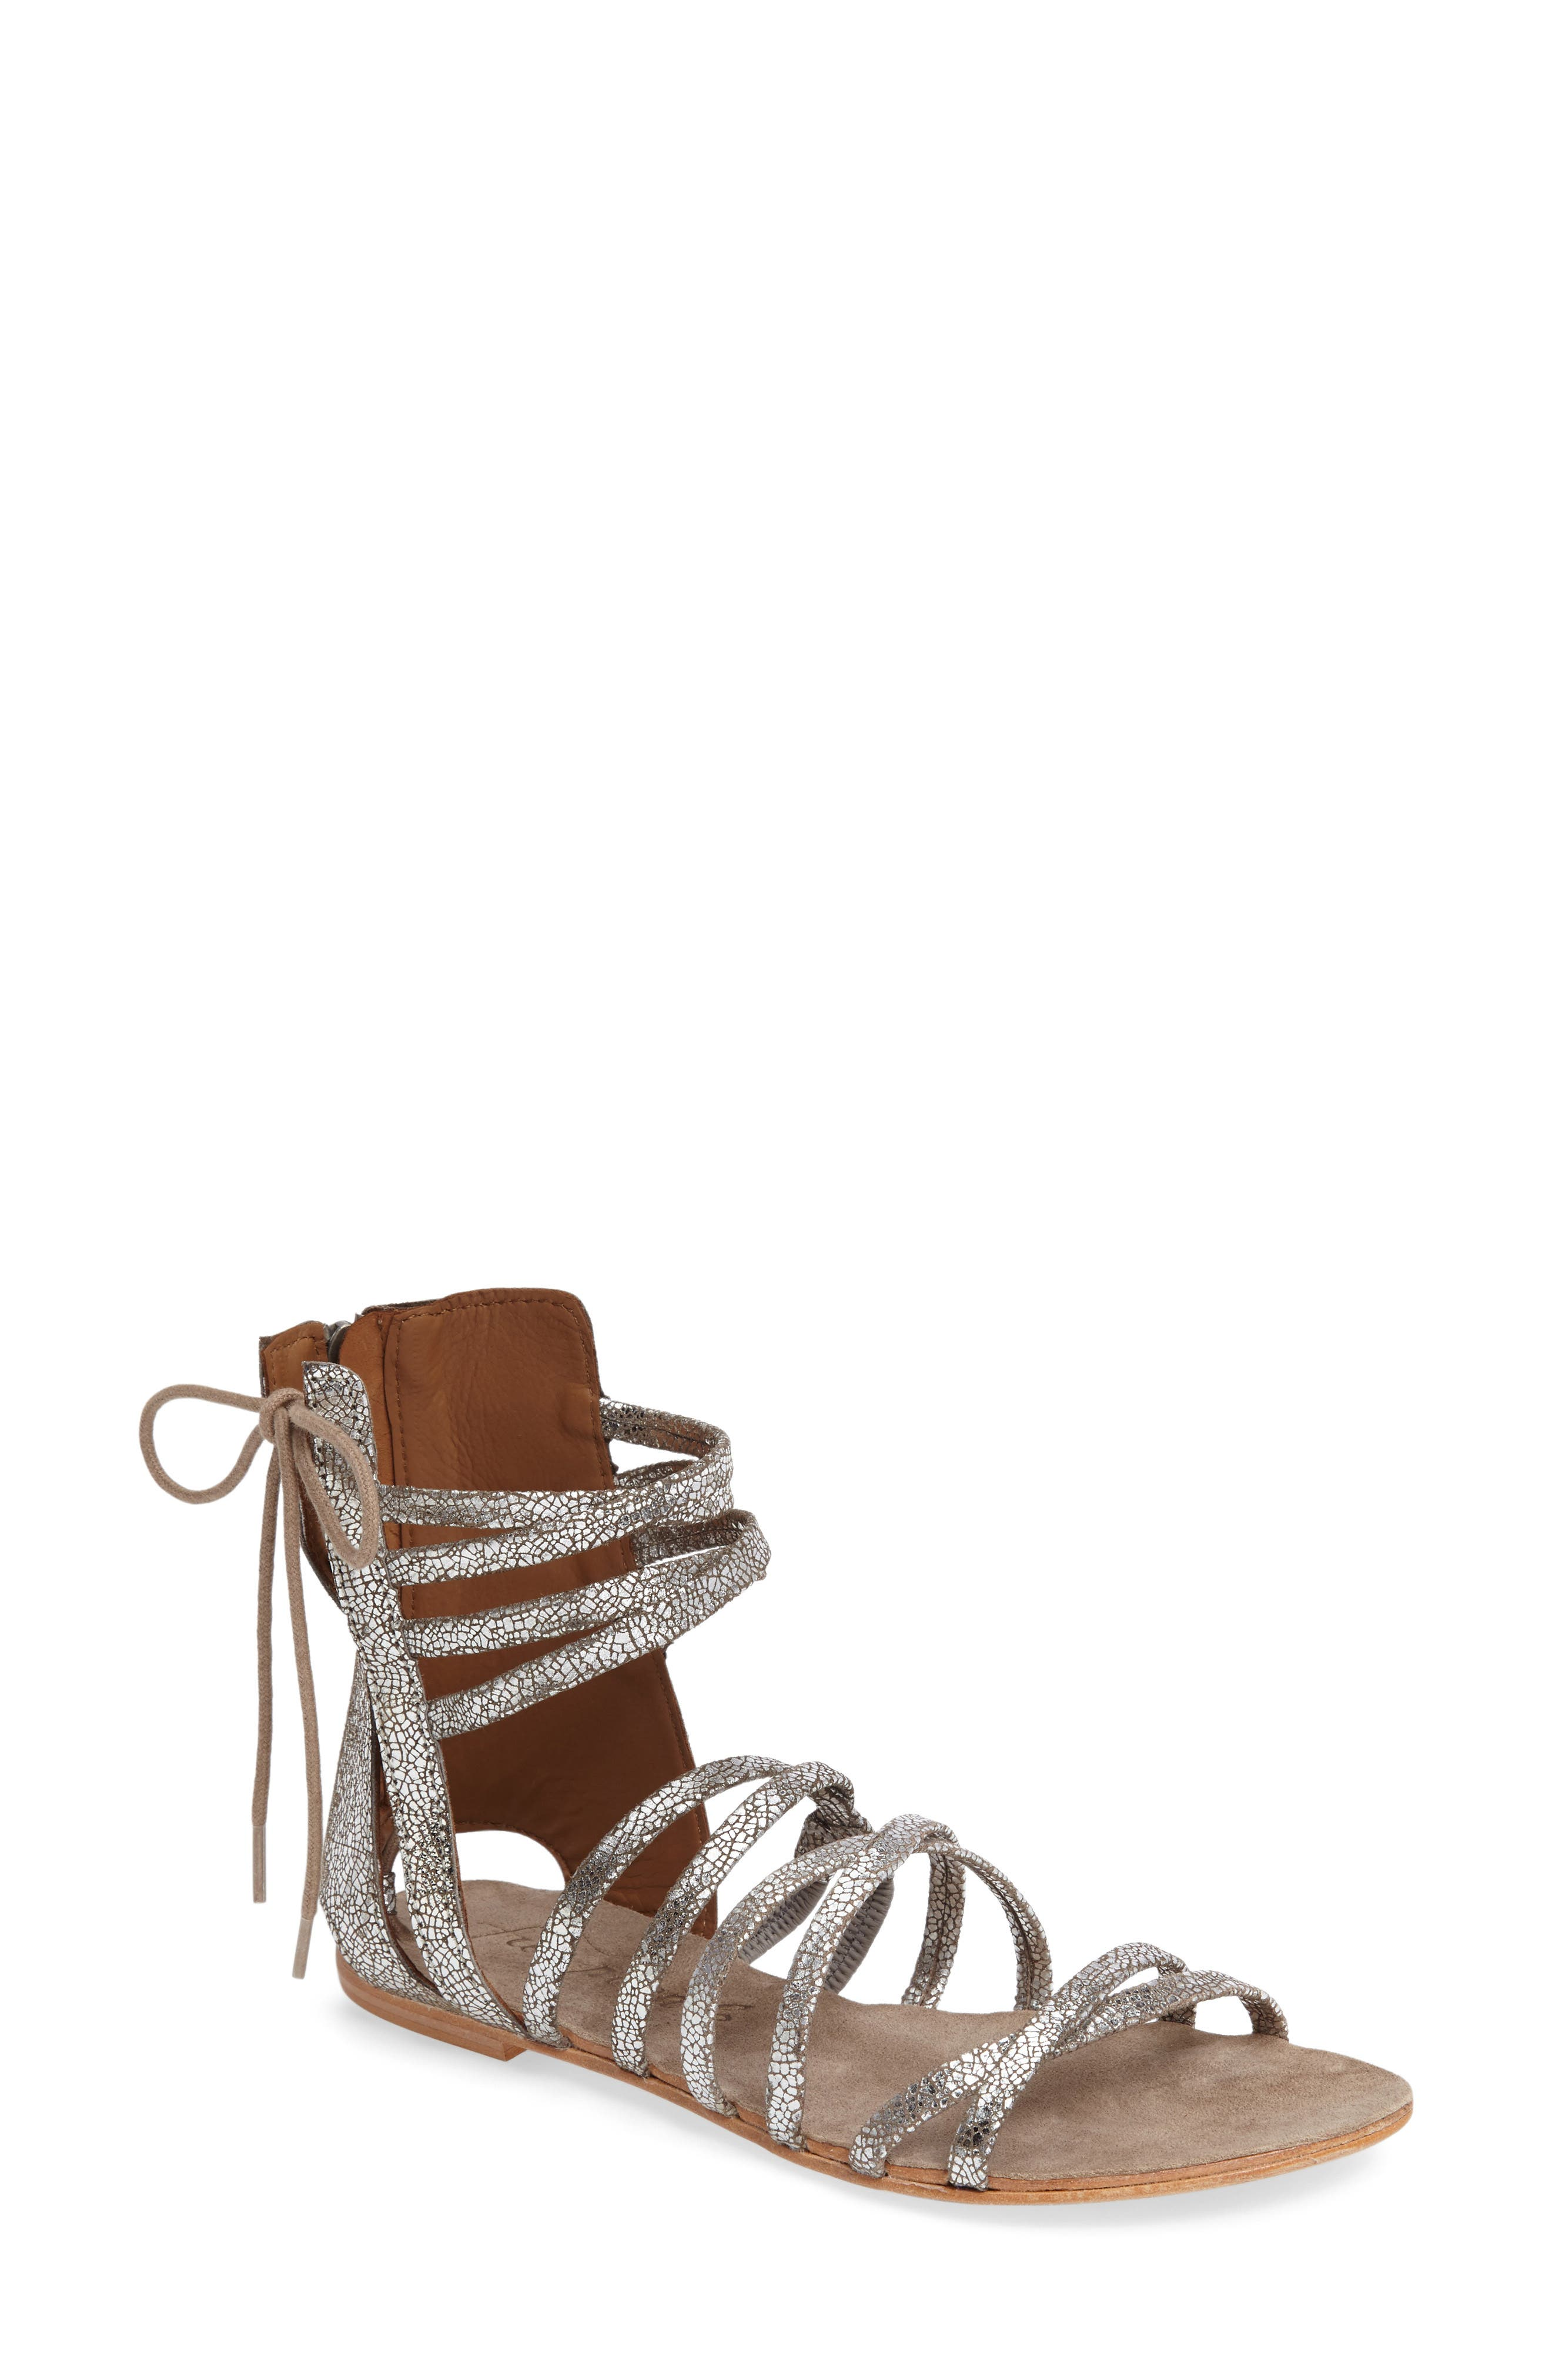 Alternate Image 1 Selected - Free People Juliette Gladiator Sandal (Women)